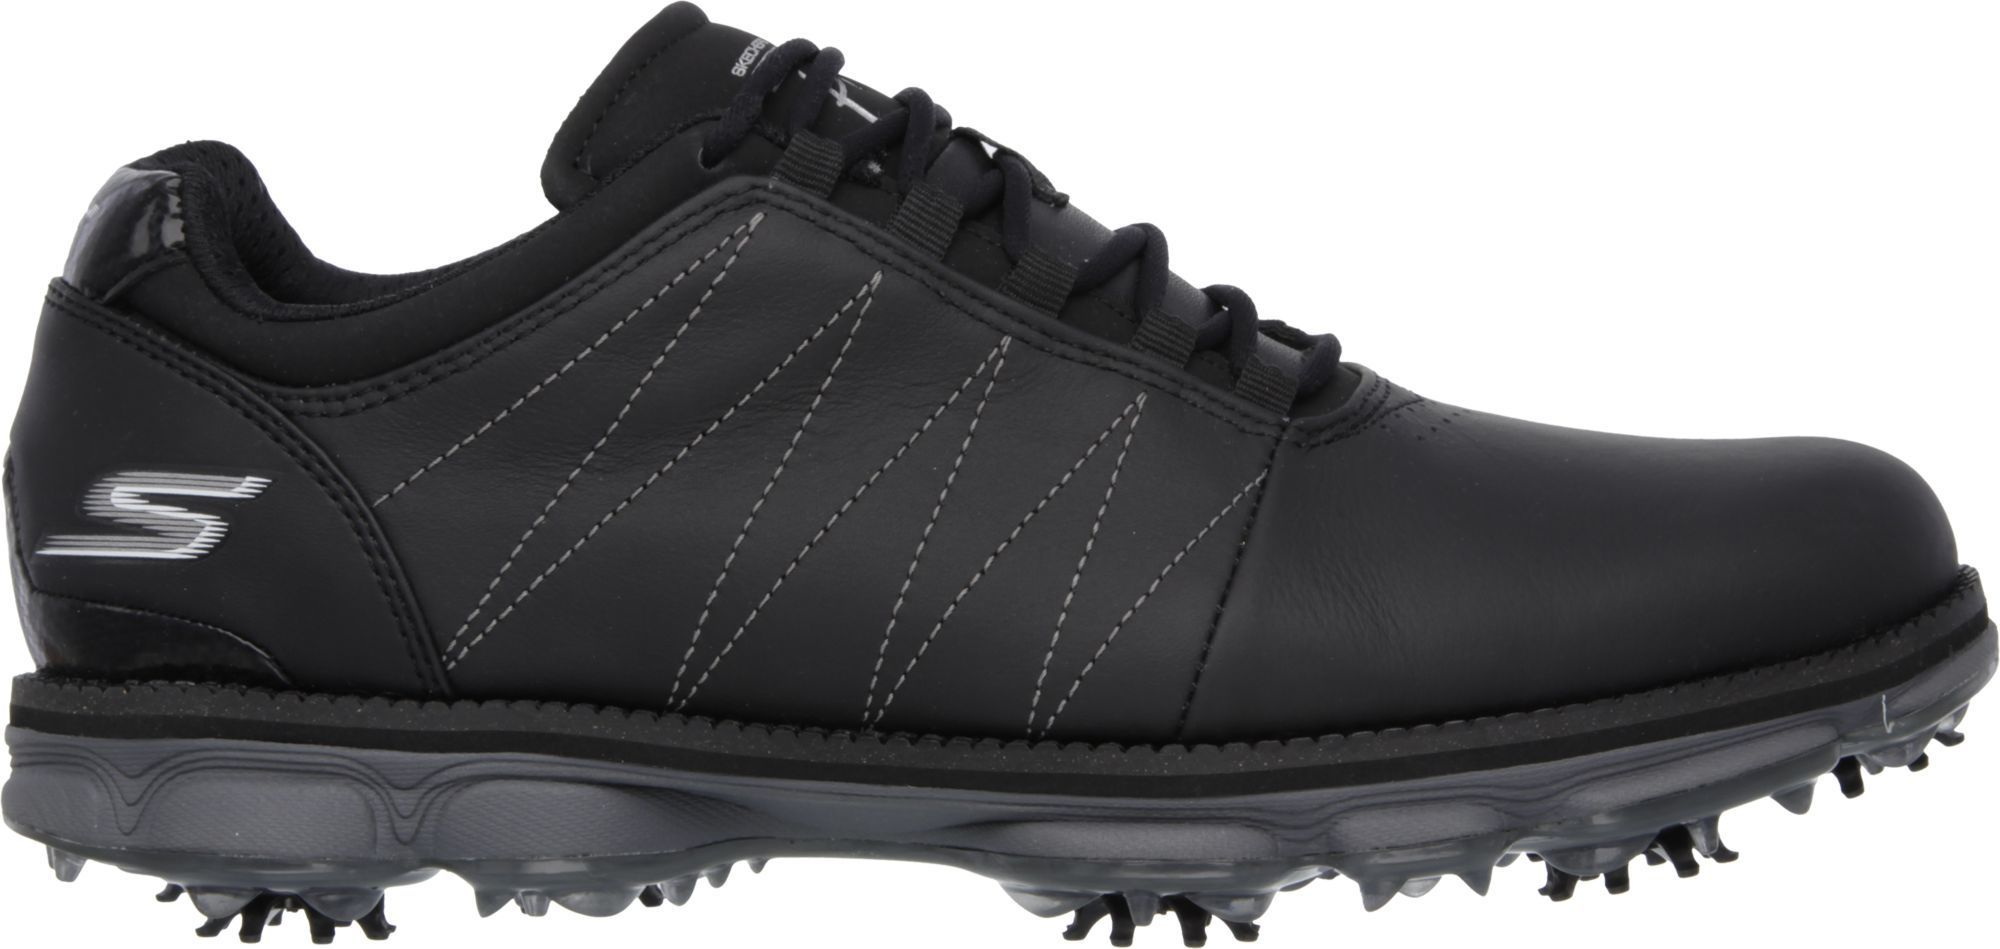 skechers kids golf shoes